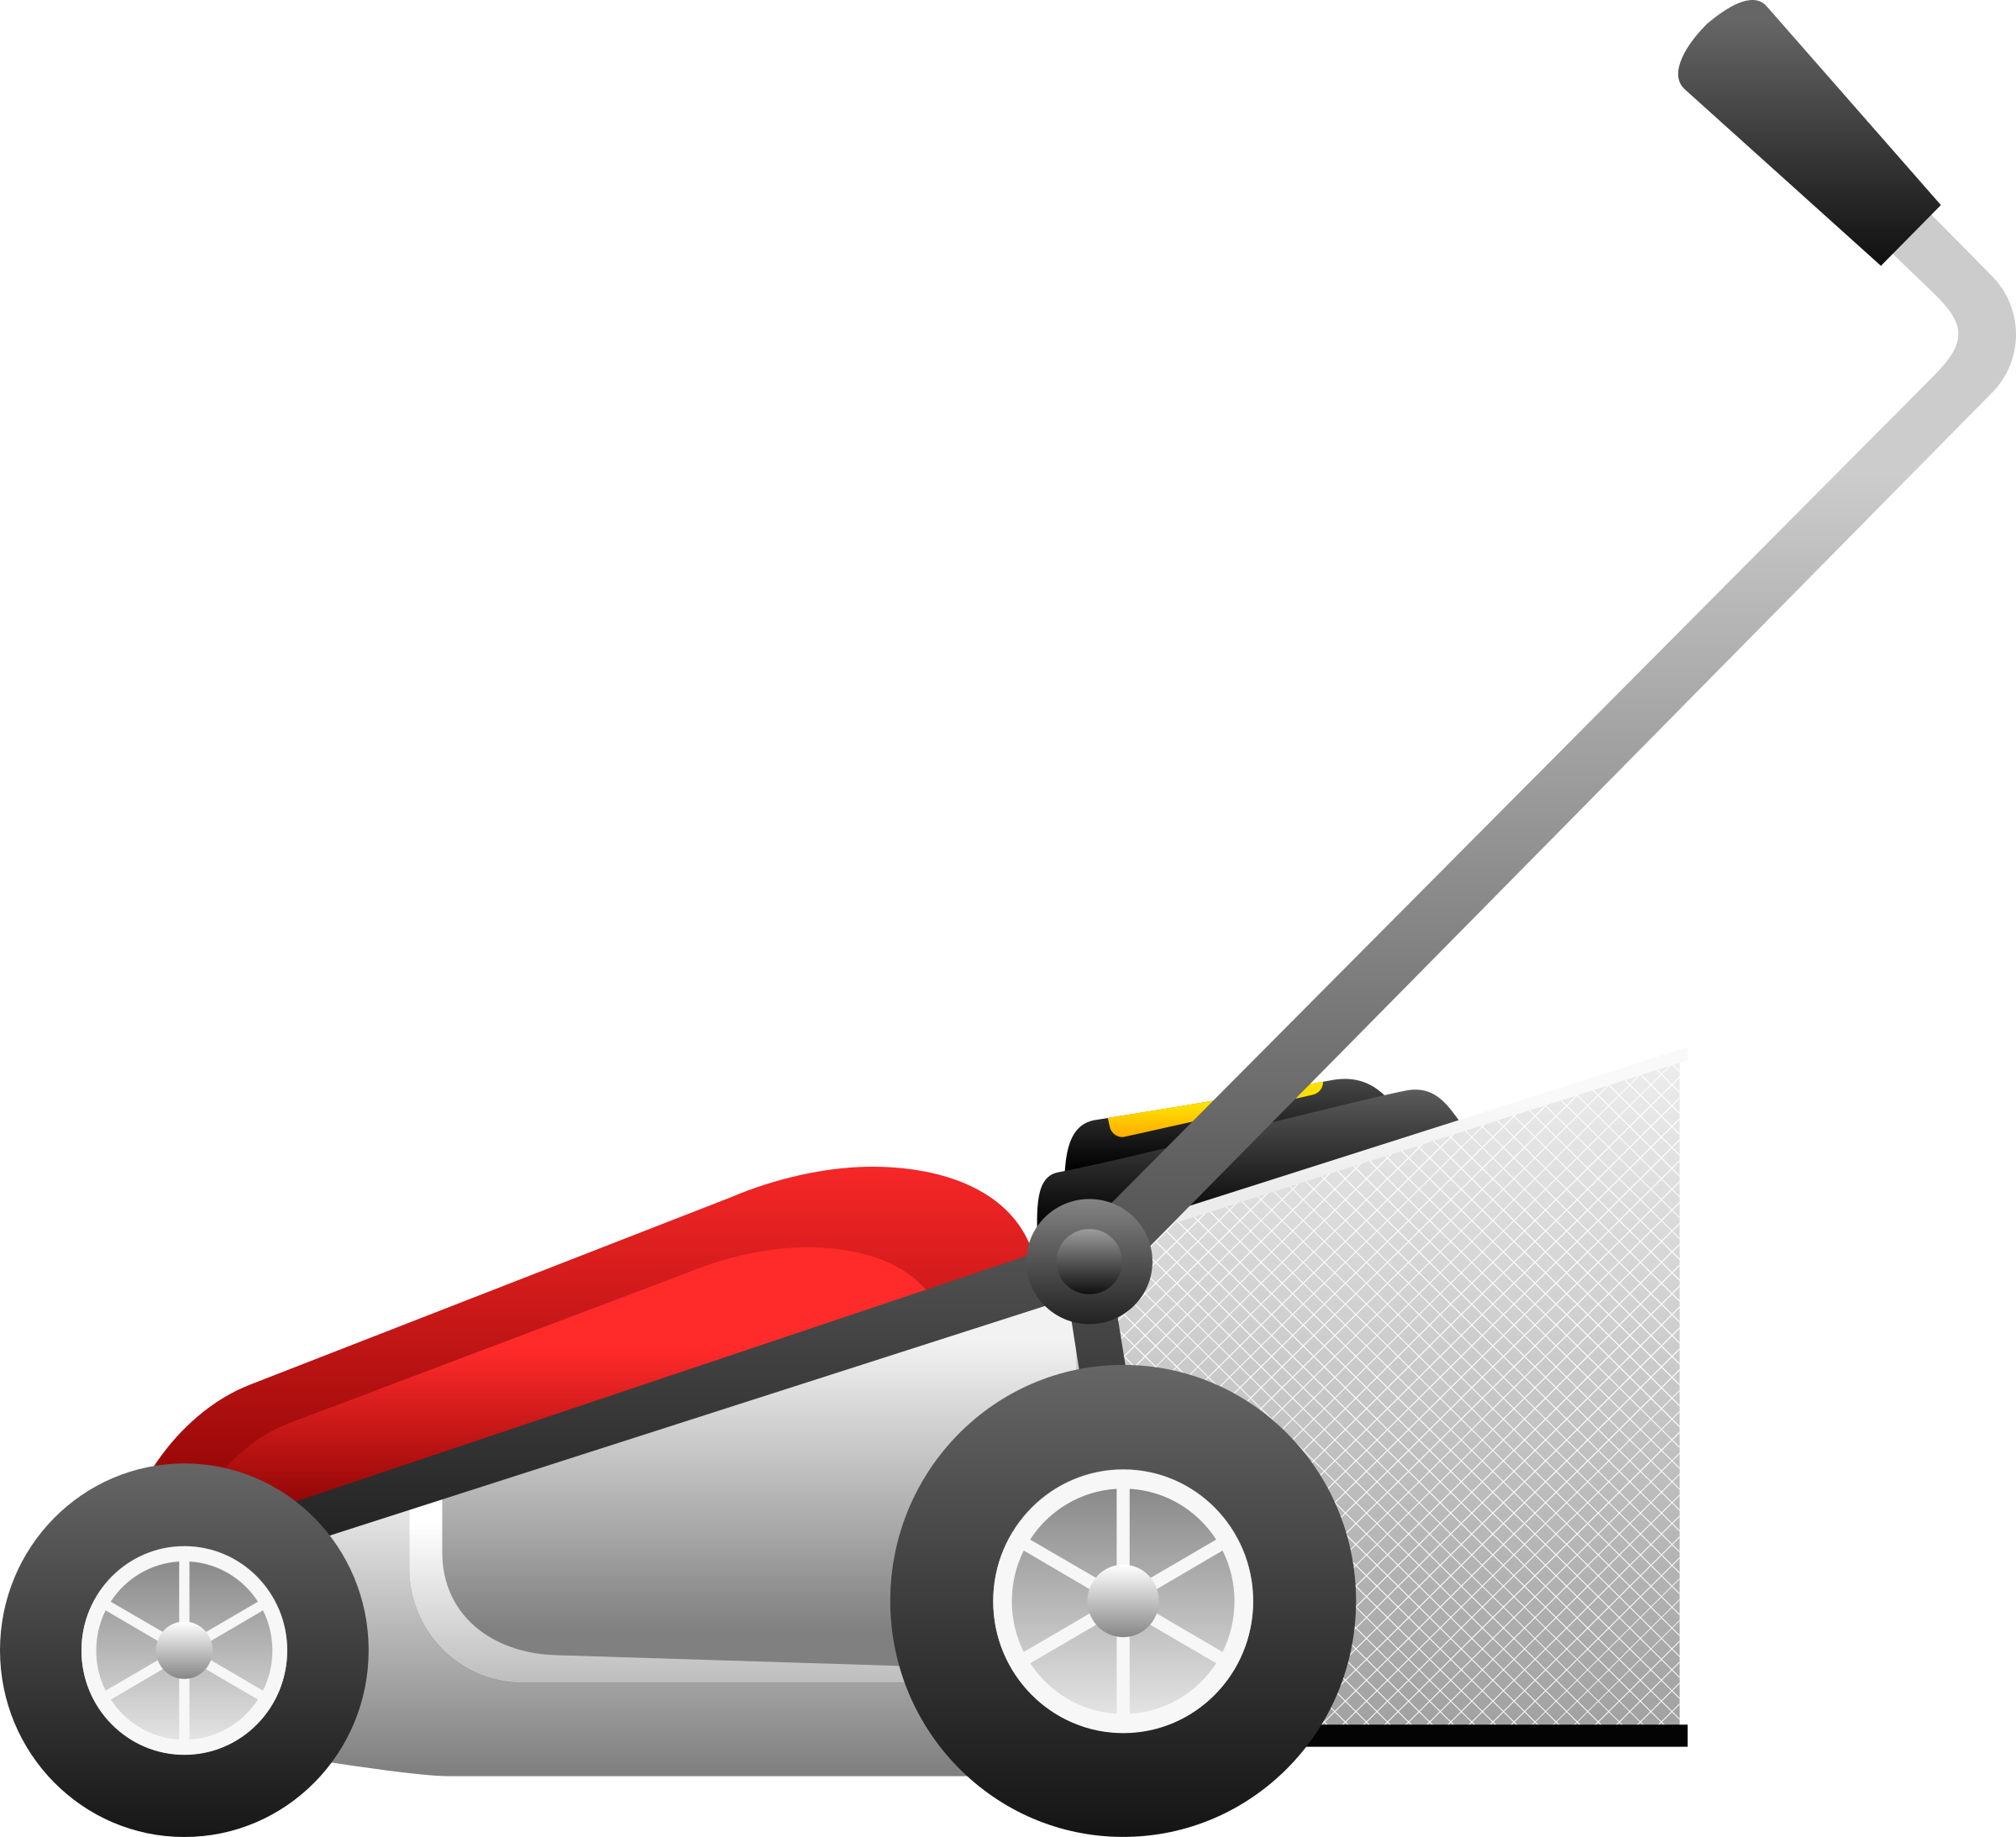 jpg freeuse download Only the mower big. Mowing clipart edger.